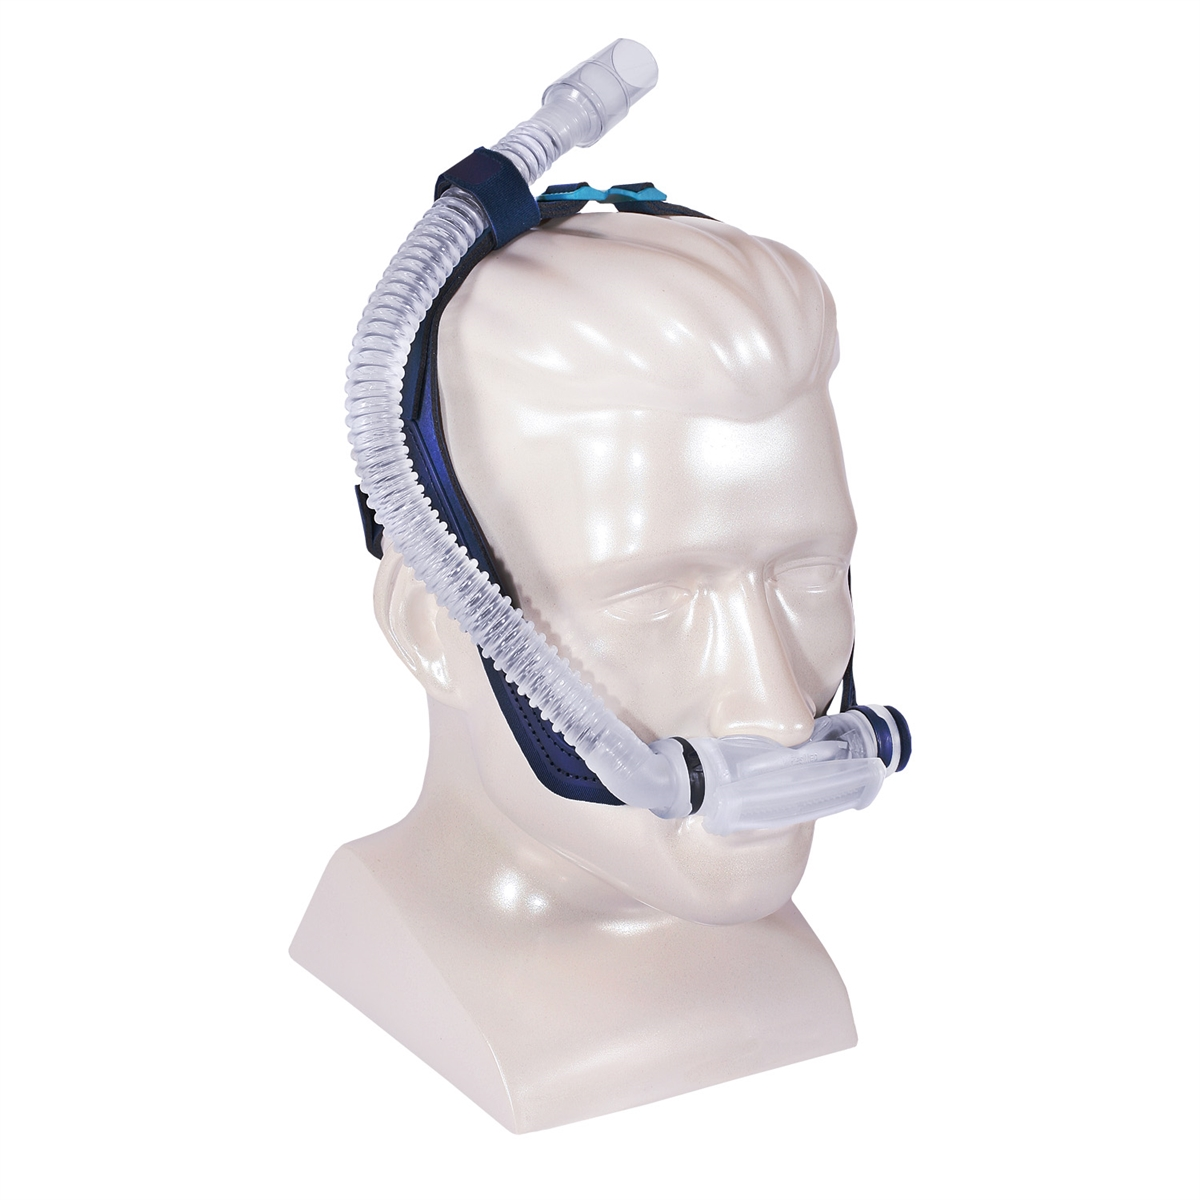 resmed swift lt nasal pillow cpap mask with headgear rx required